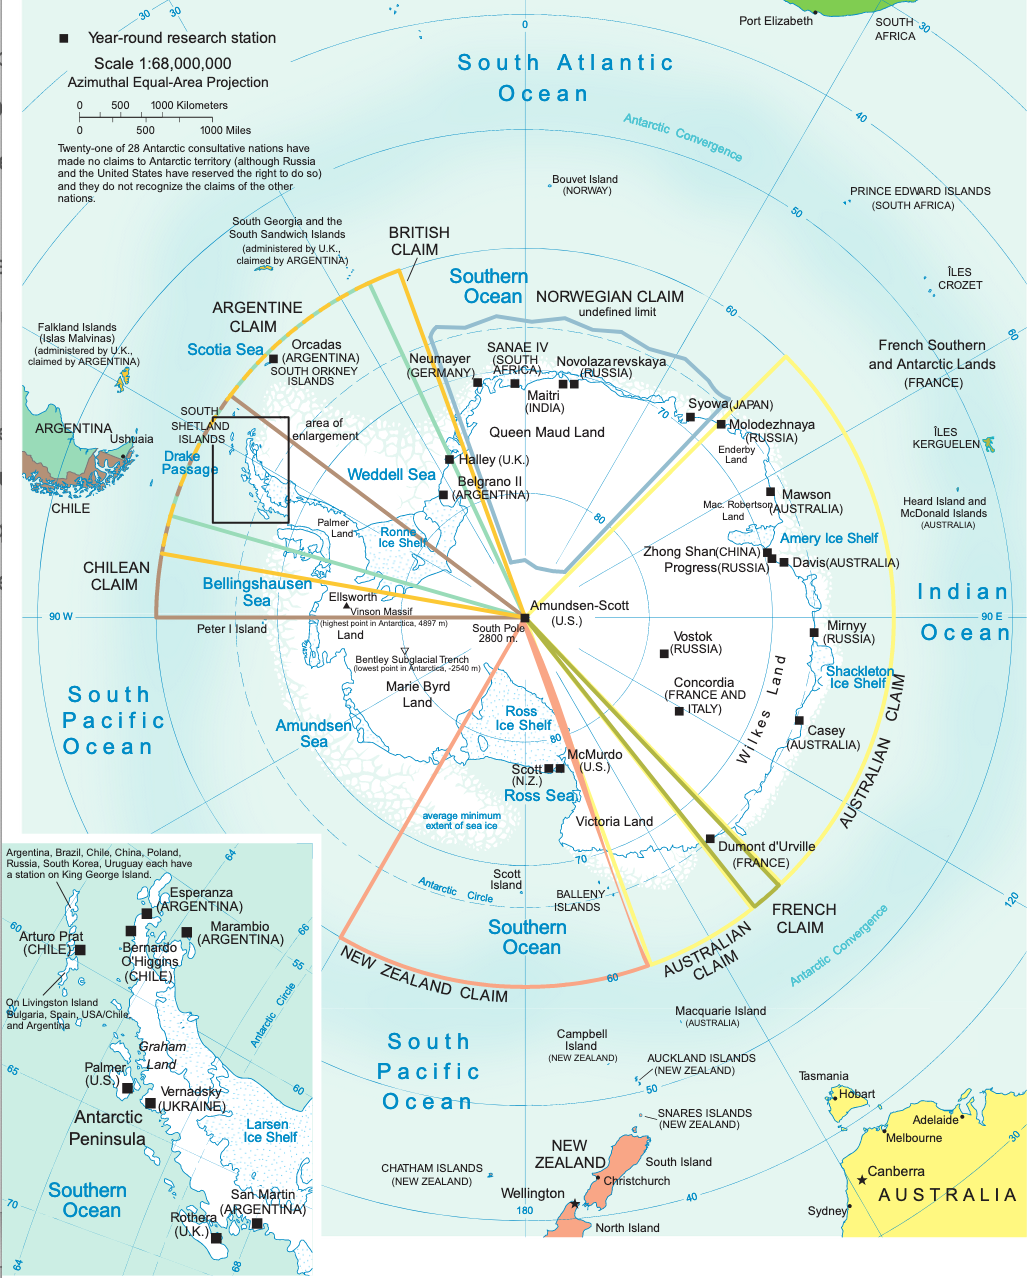 Territorial Claims ans Stations in Antarctica